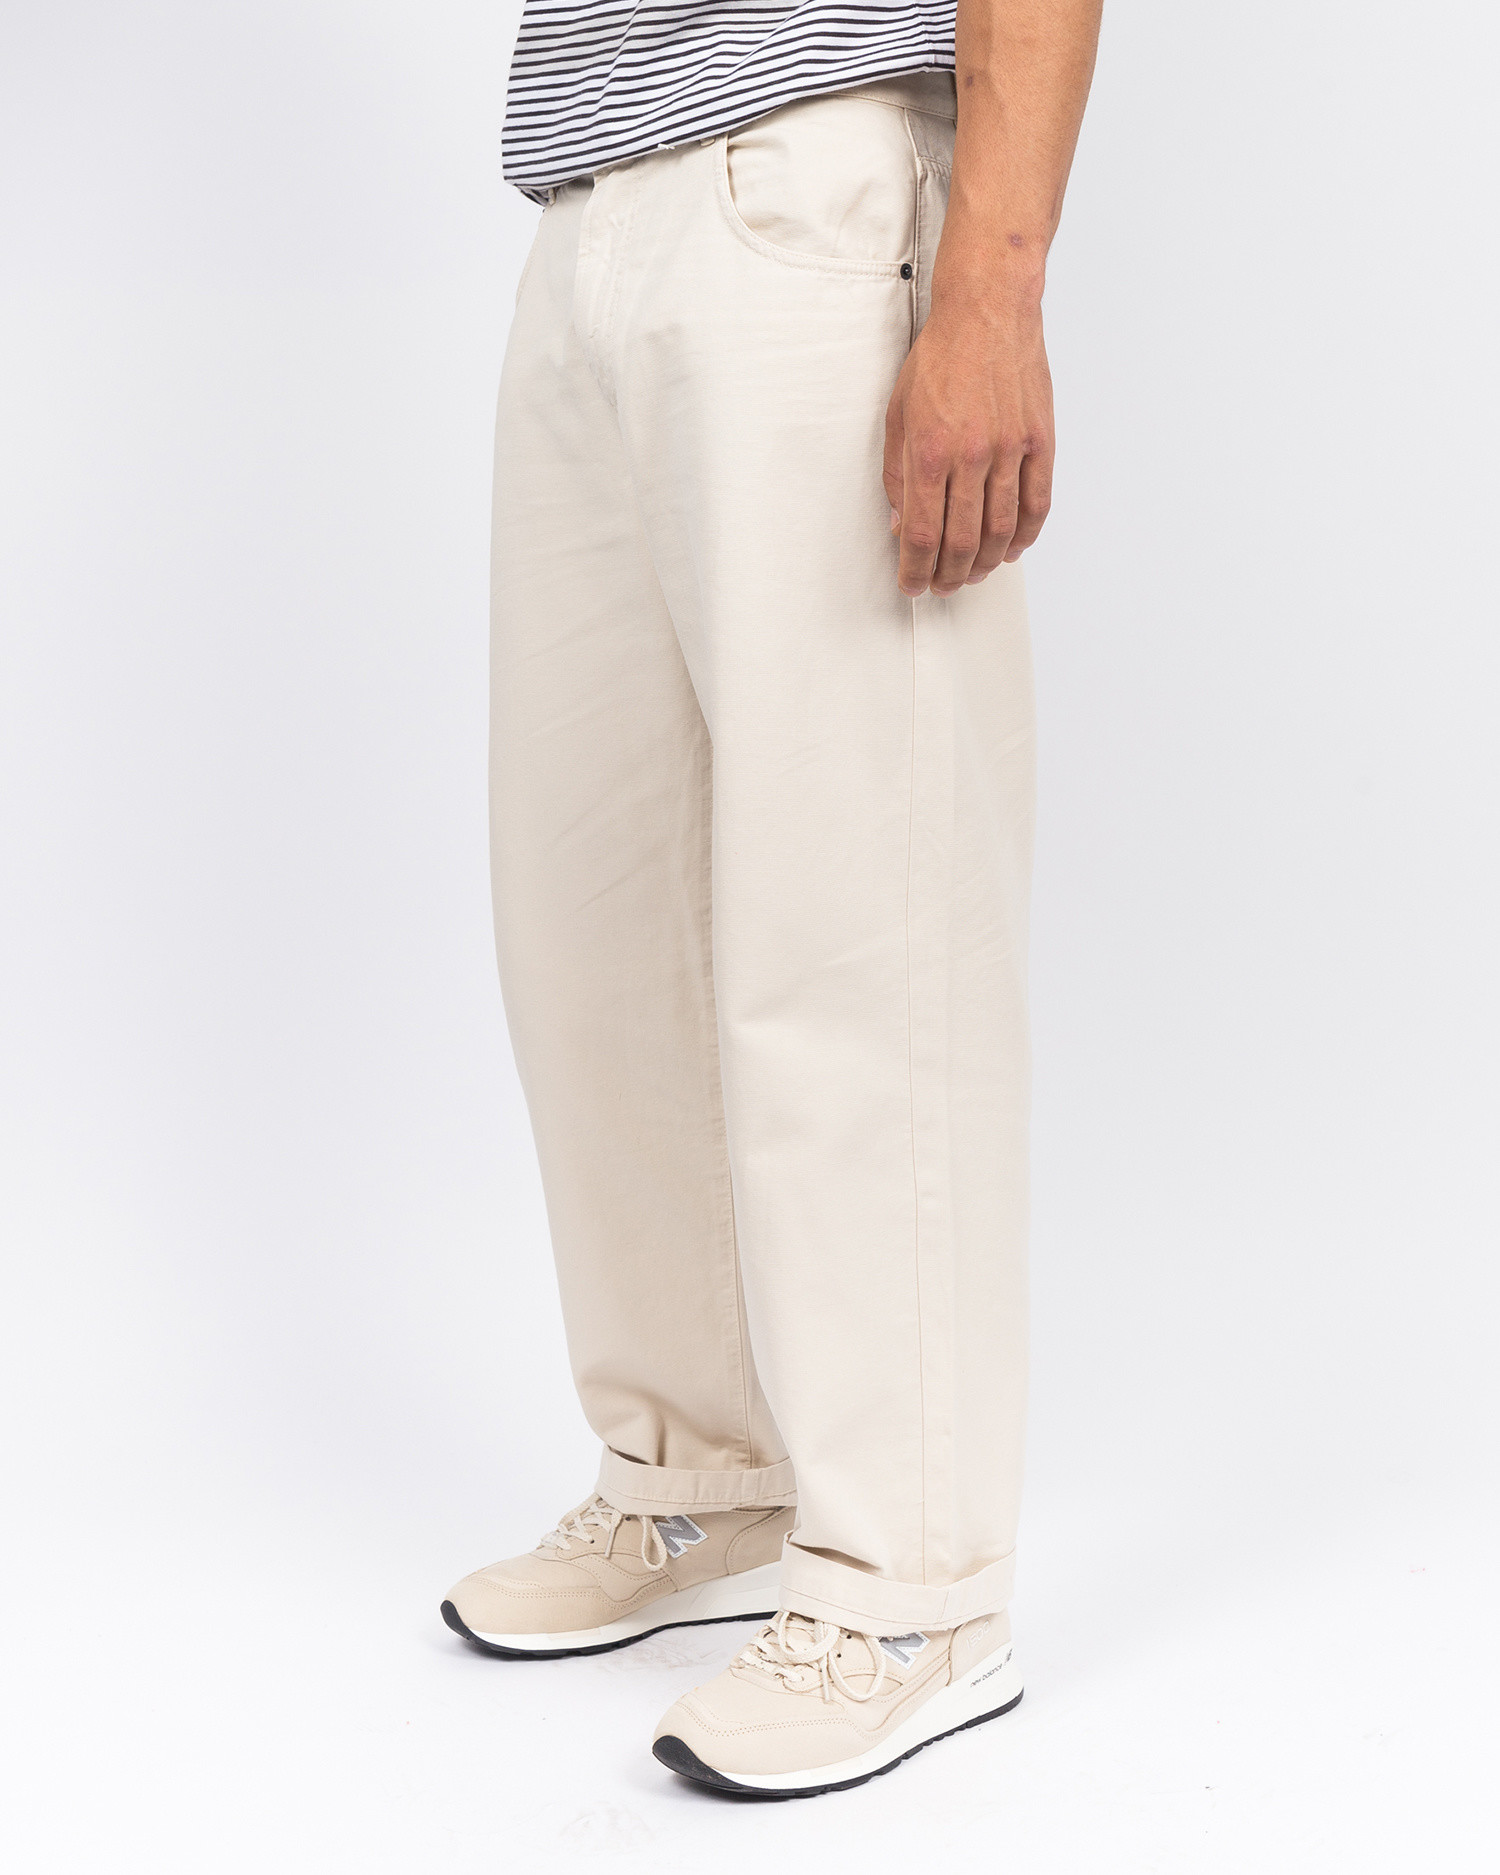 Pop Trading Co DRS pants off white canvas